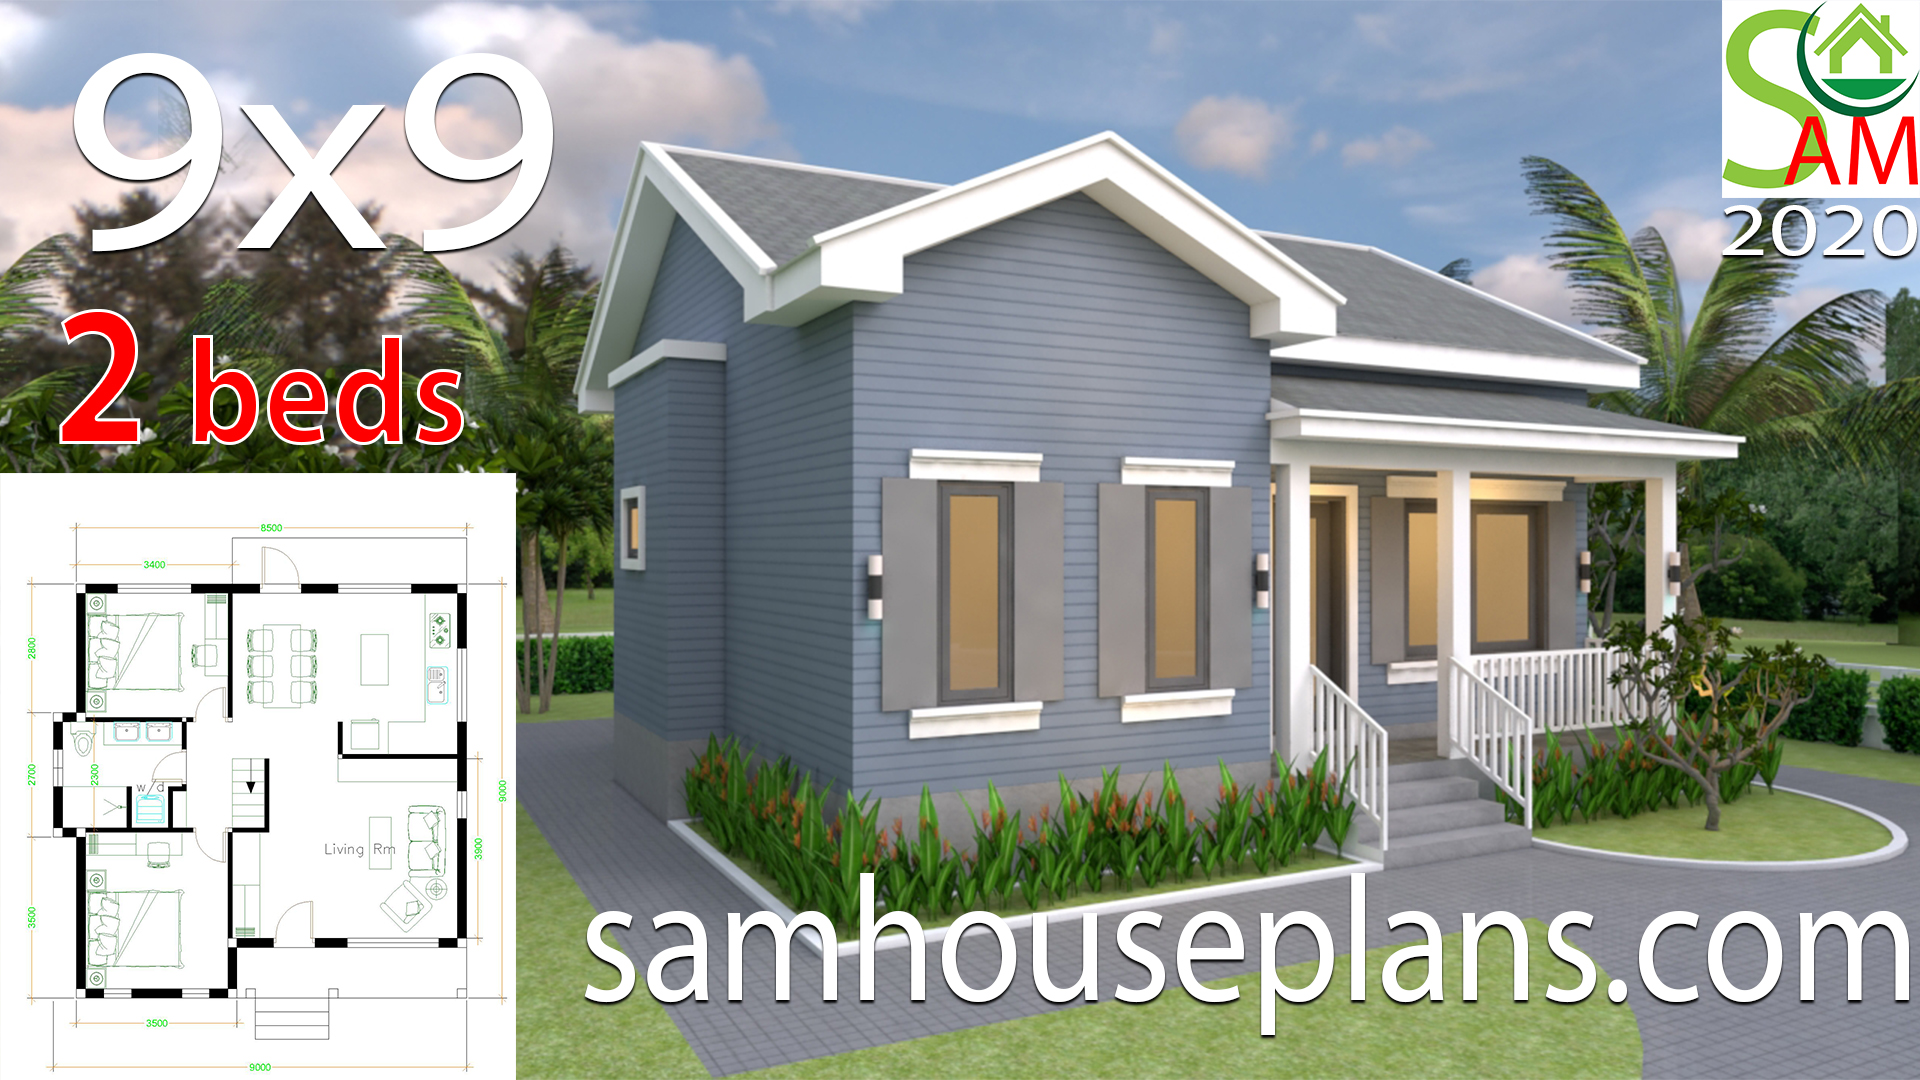 House Plans 9x9 with 2 Bedrooms Gable Roof - Sam House Plans